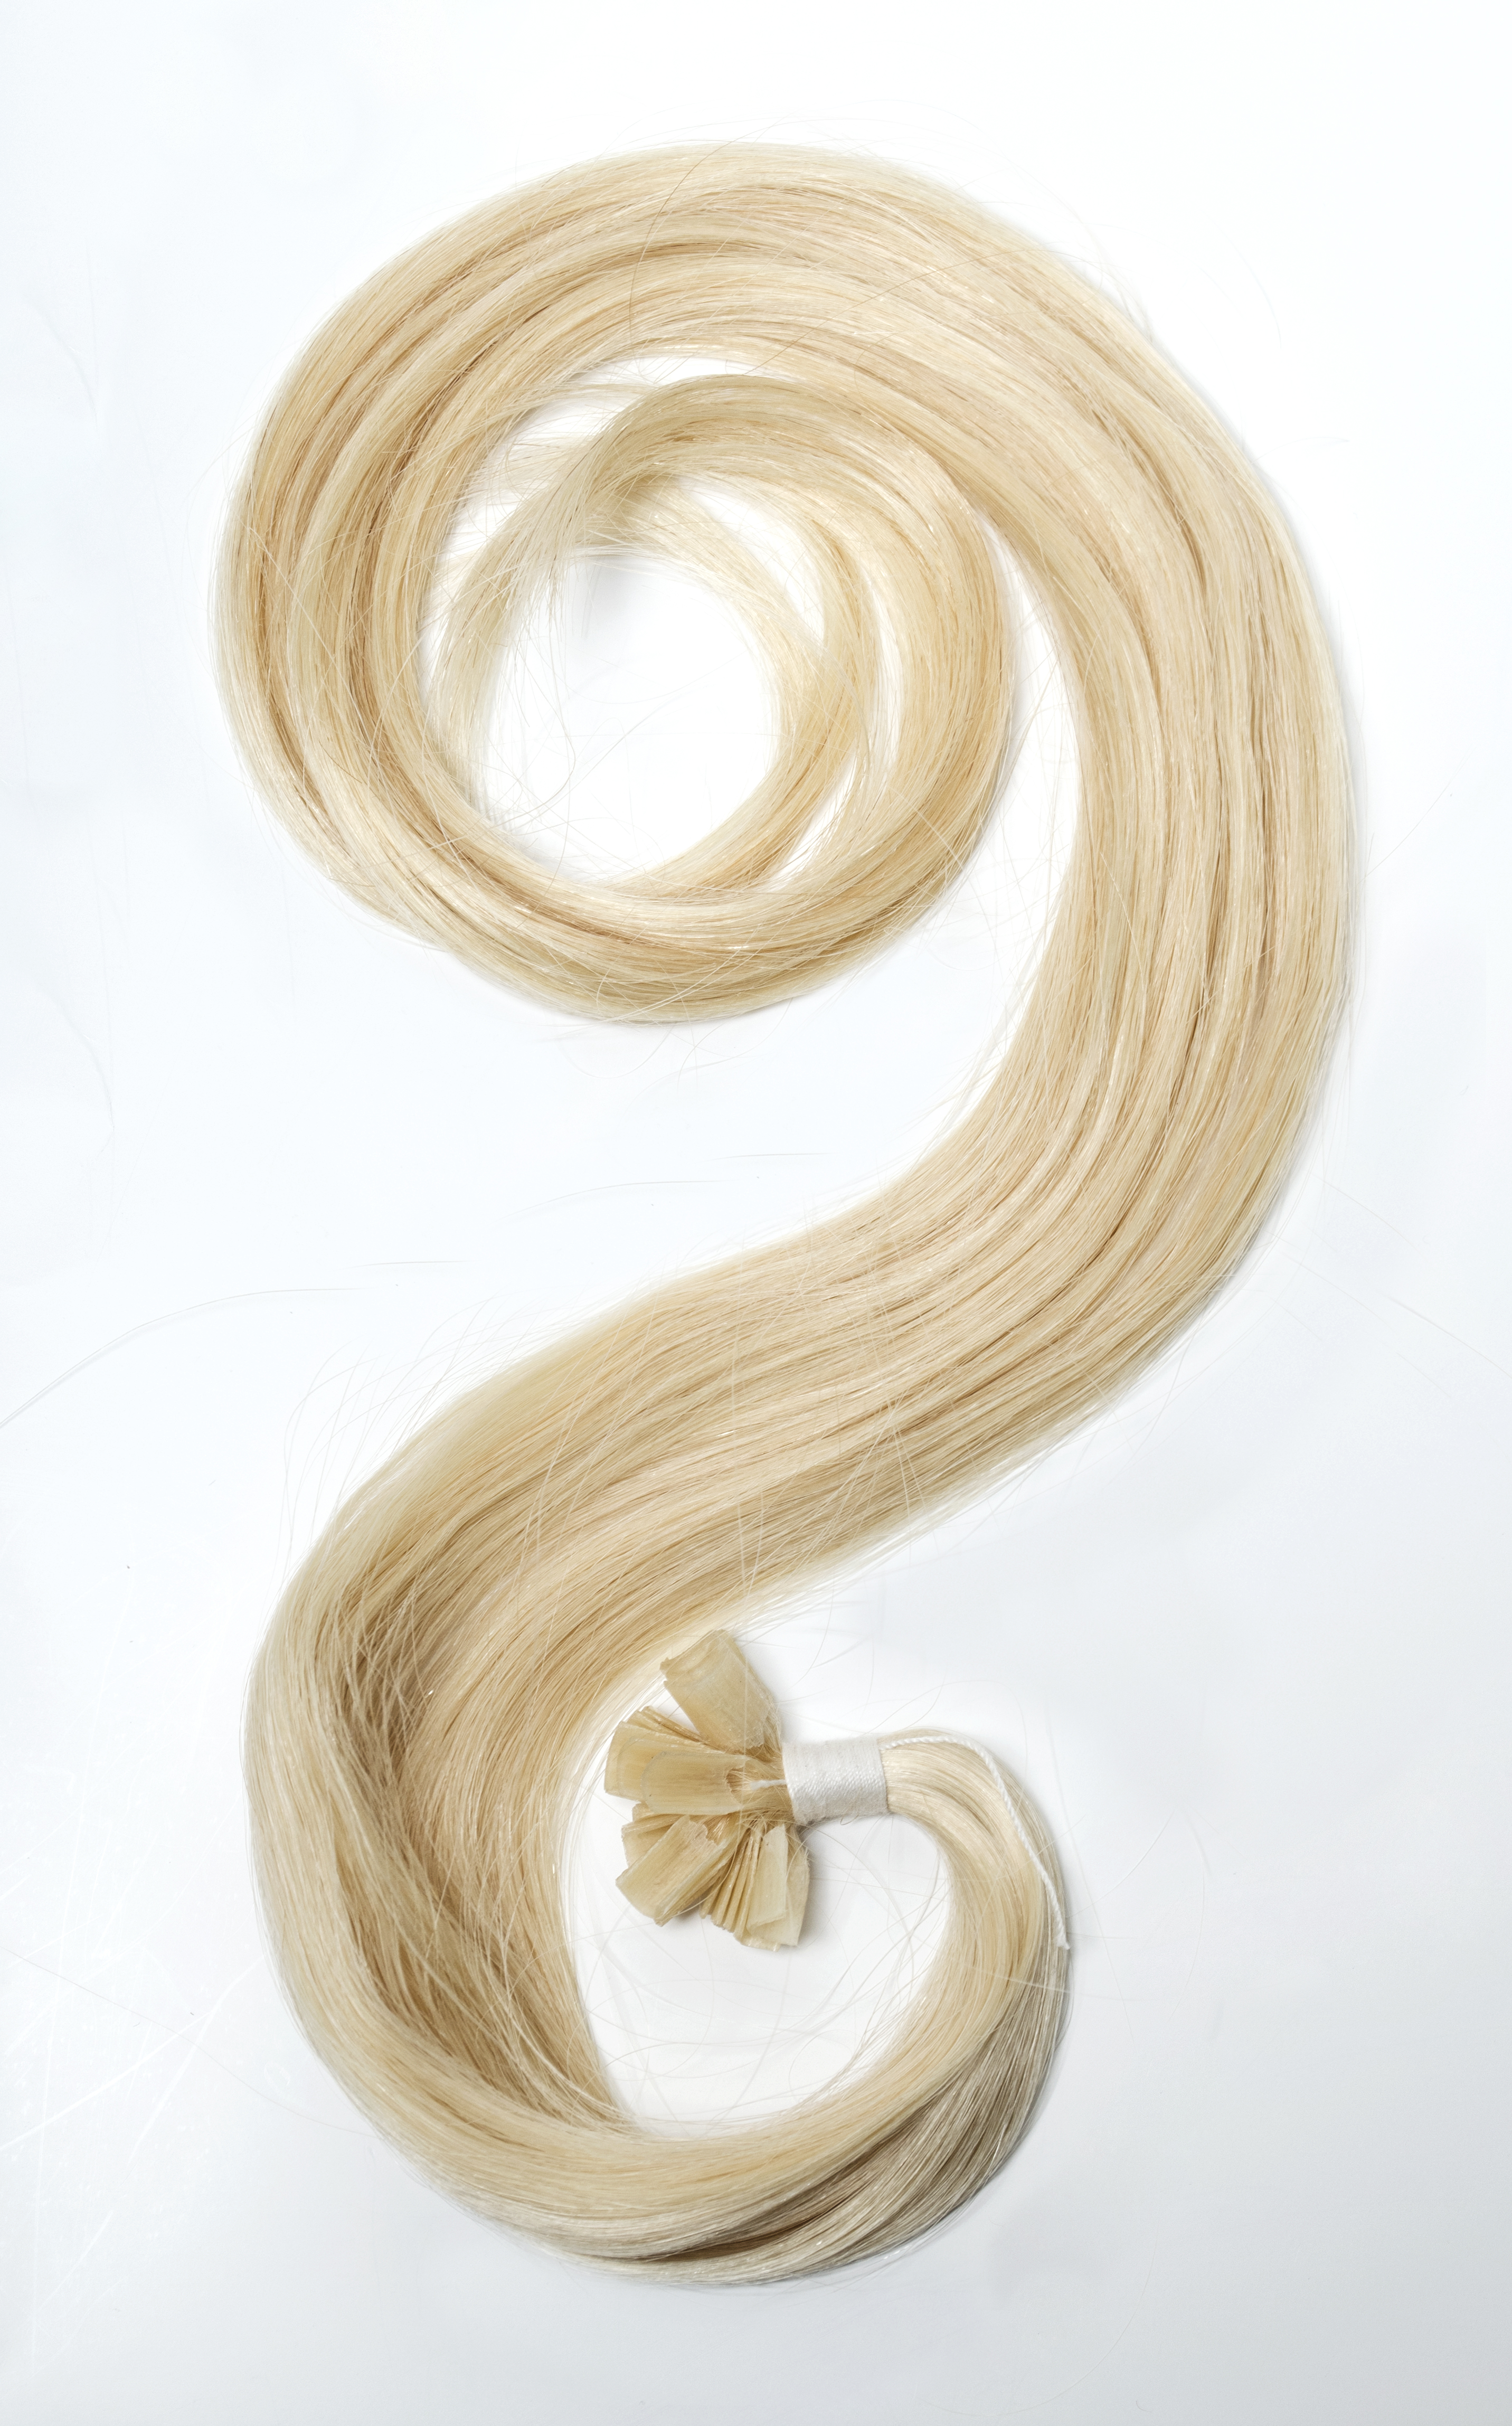 Bonding extensions Bali Luxury Hair